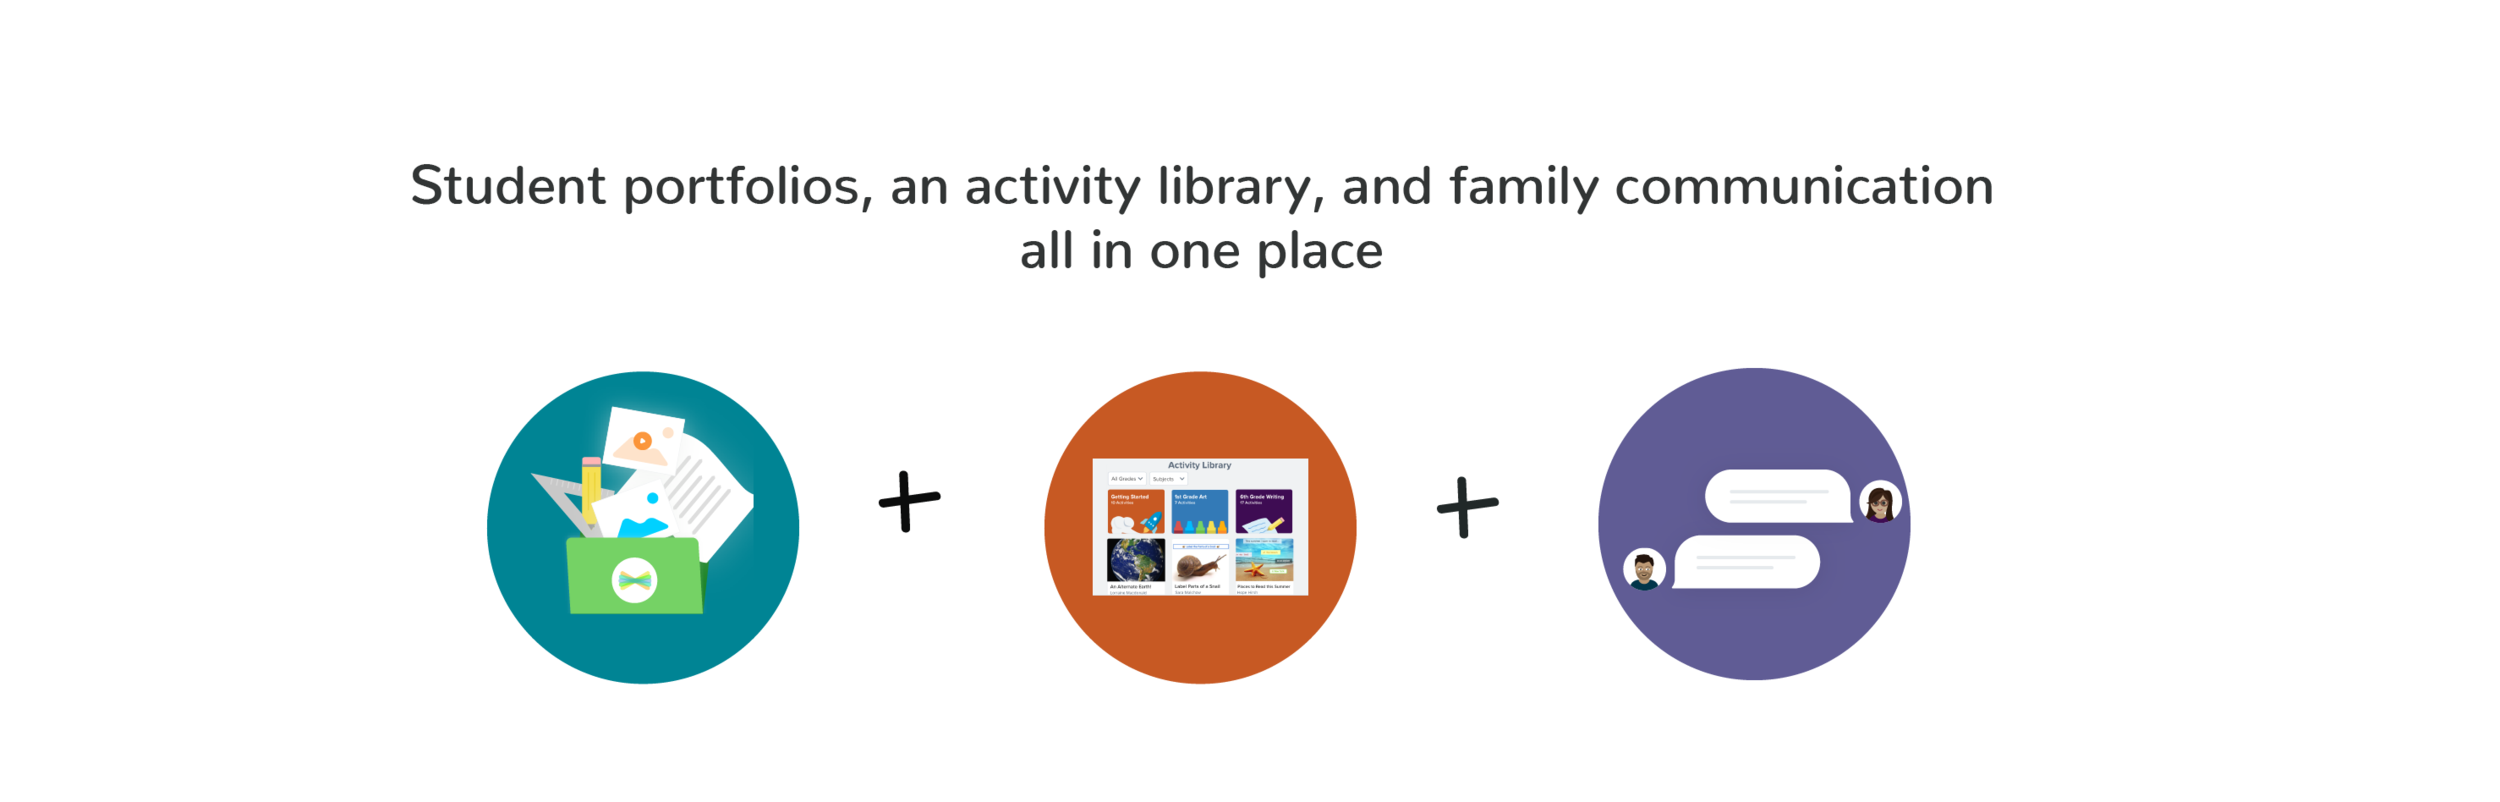 Student portfolios, an activity library, and family communication all in one place.png